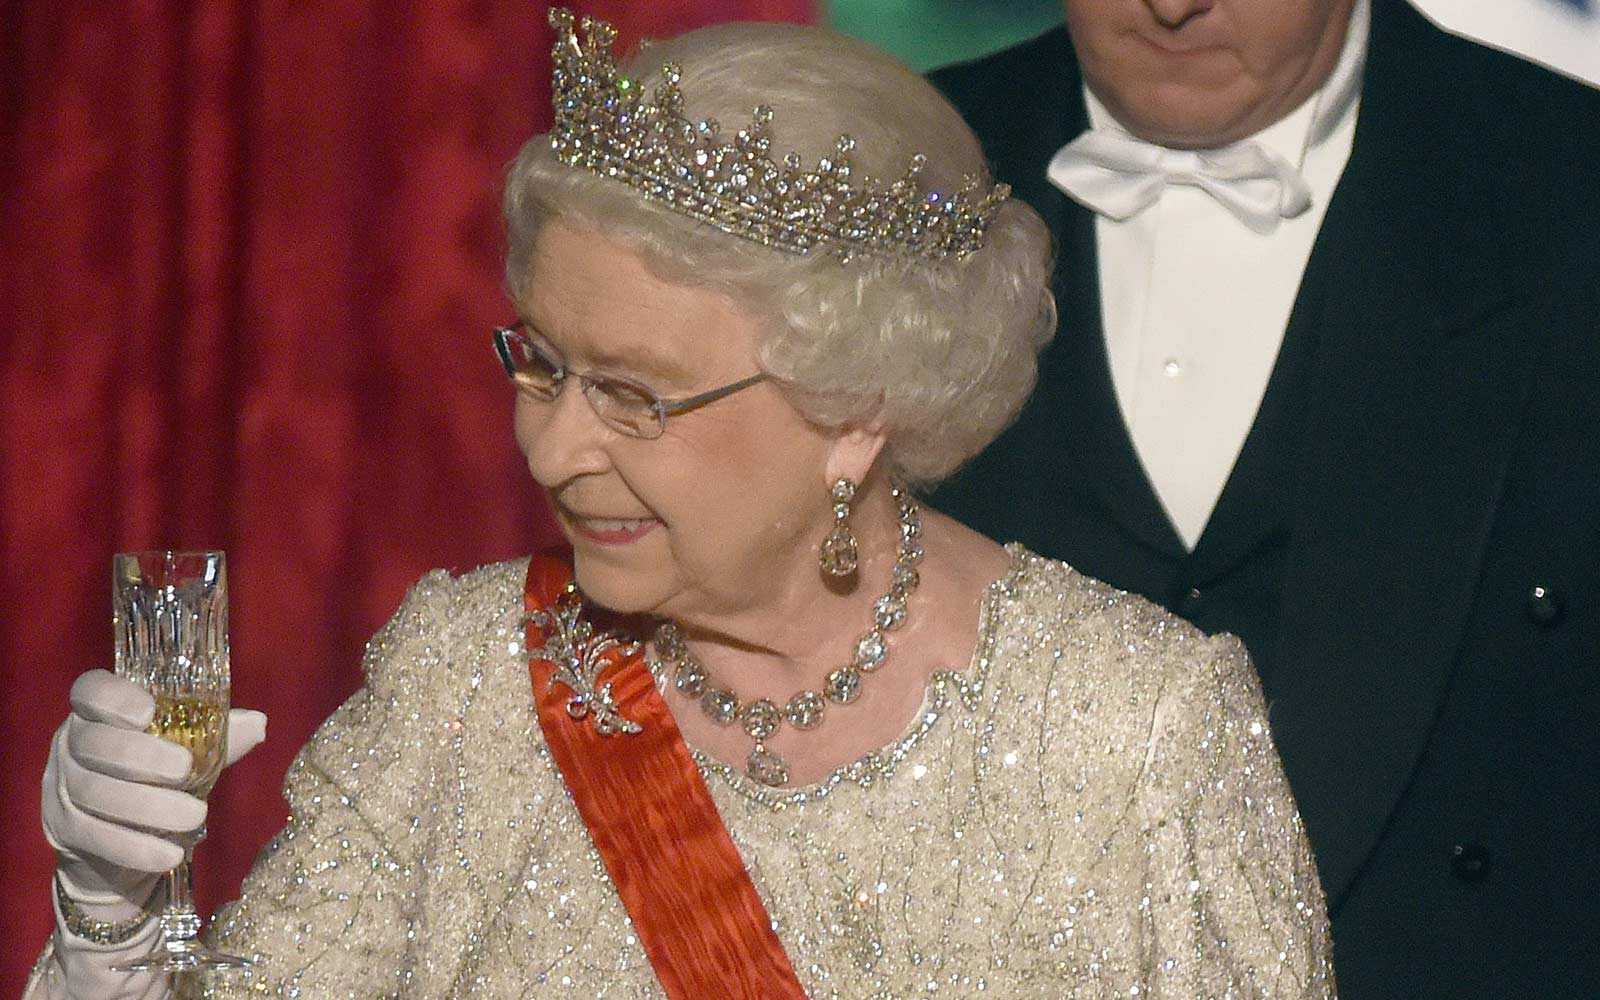 Queen Elizabeth II Makes Her Own Sparkling Wine